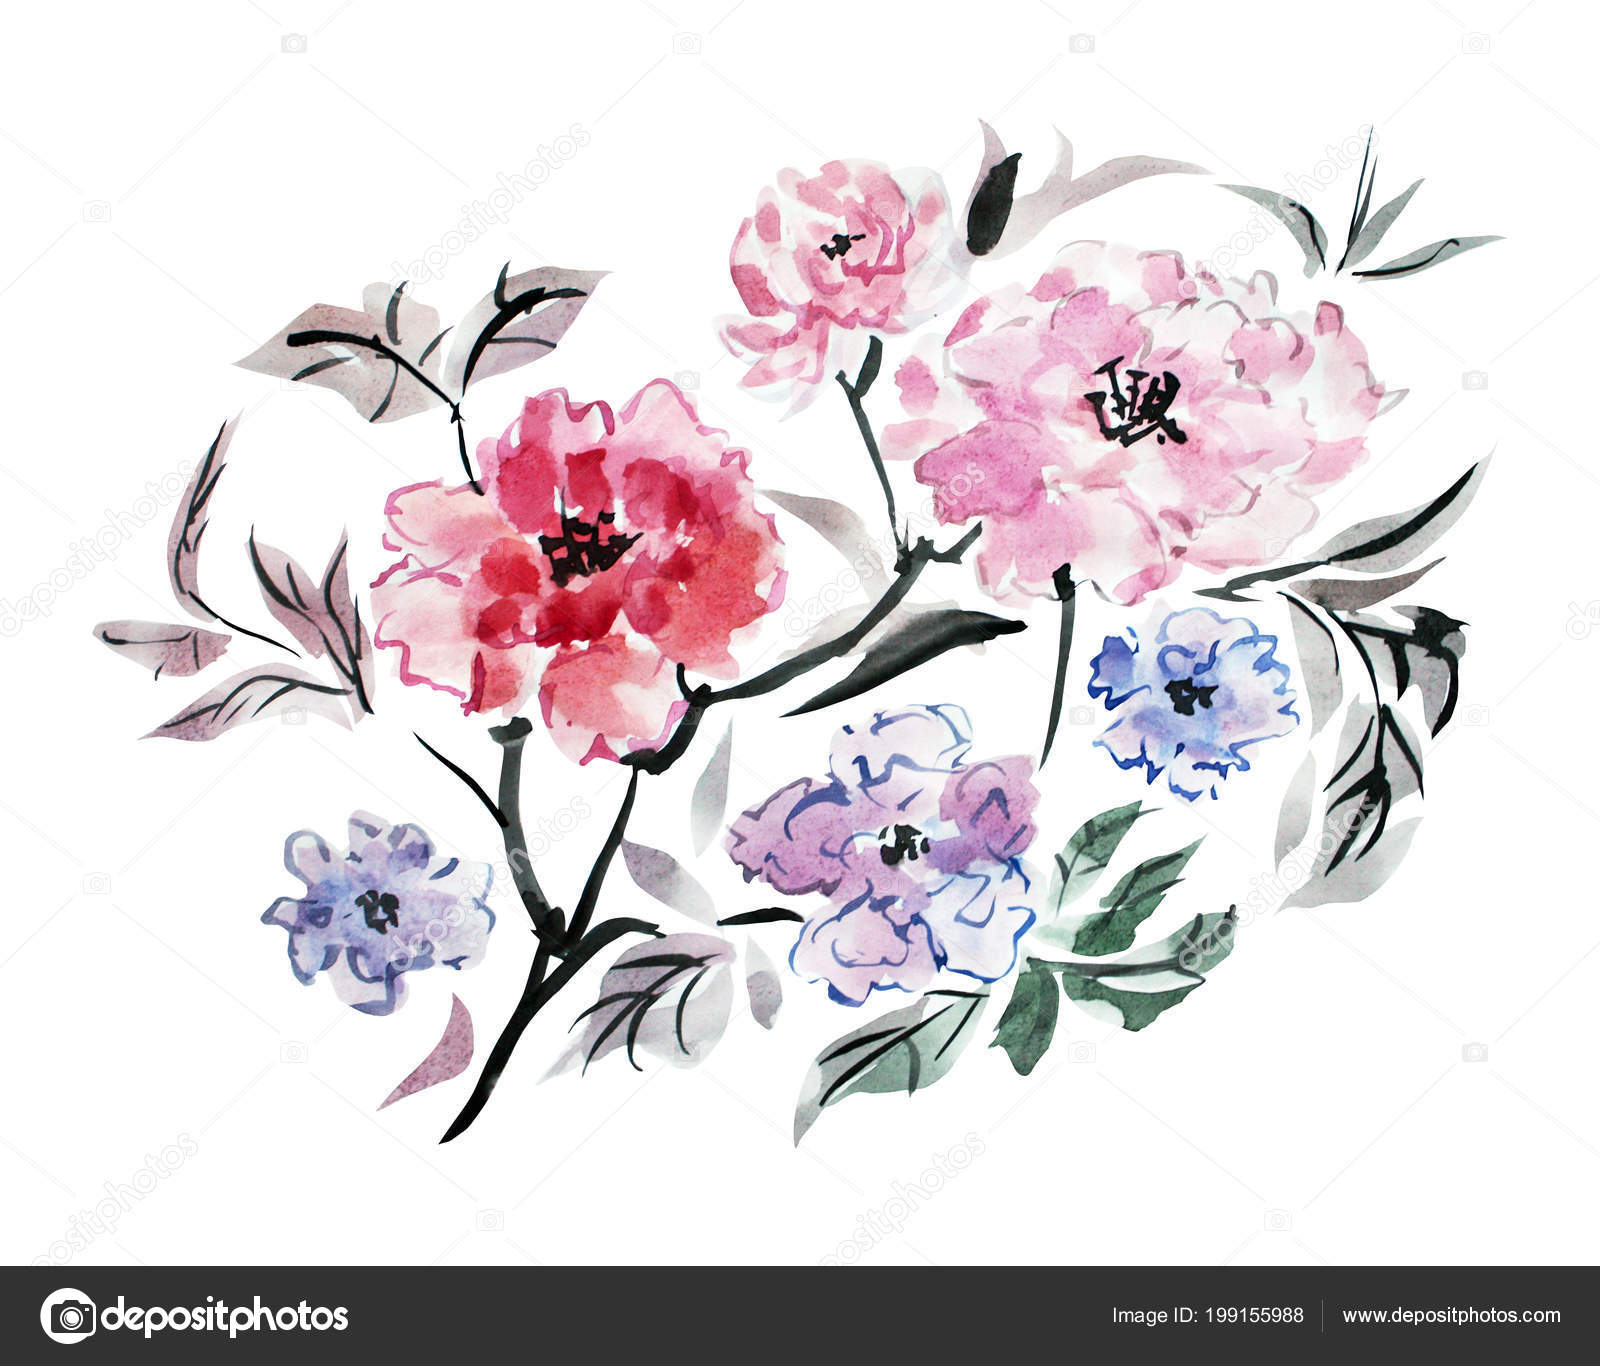 Pfingstrosen Clipart Dekorative Aquarell Pfingstrose Blumen Clipart Design